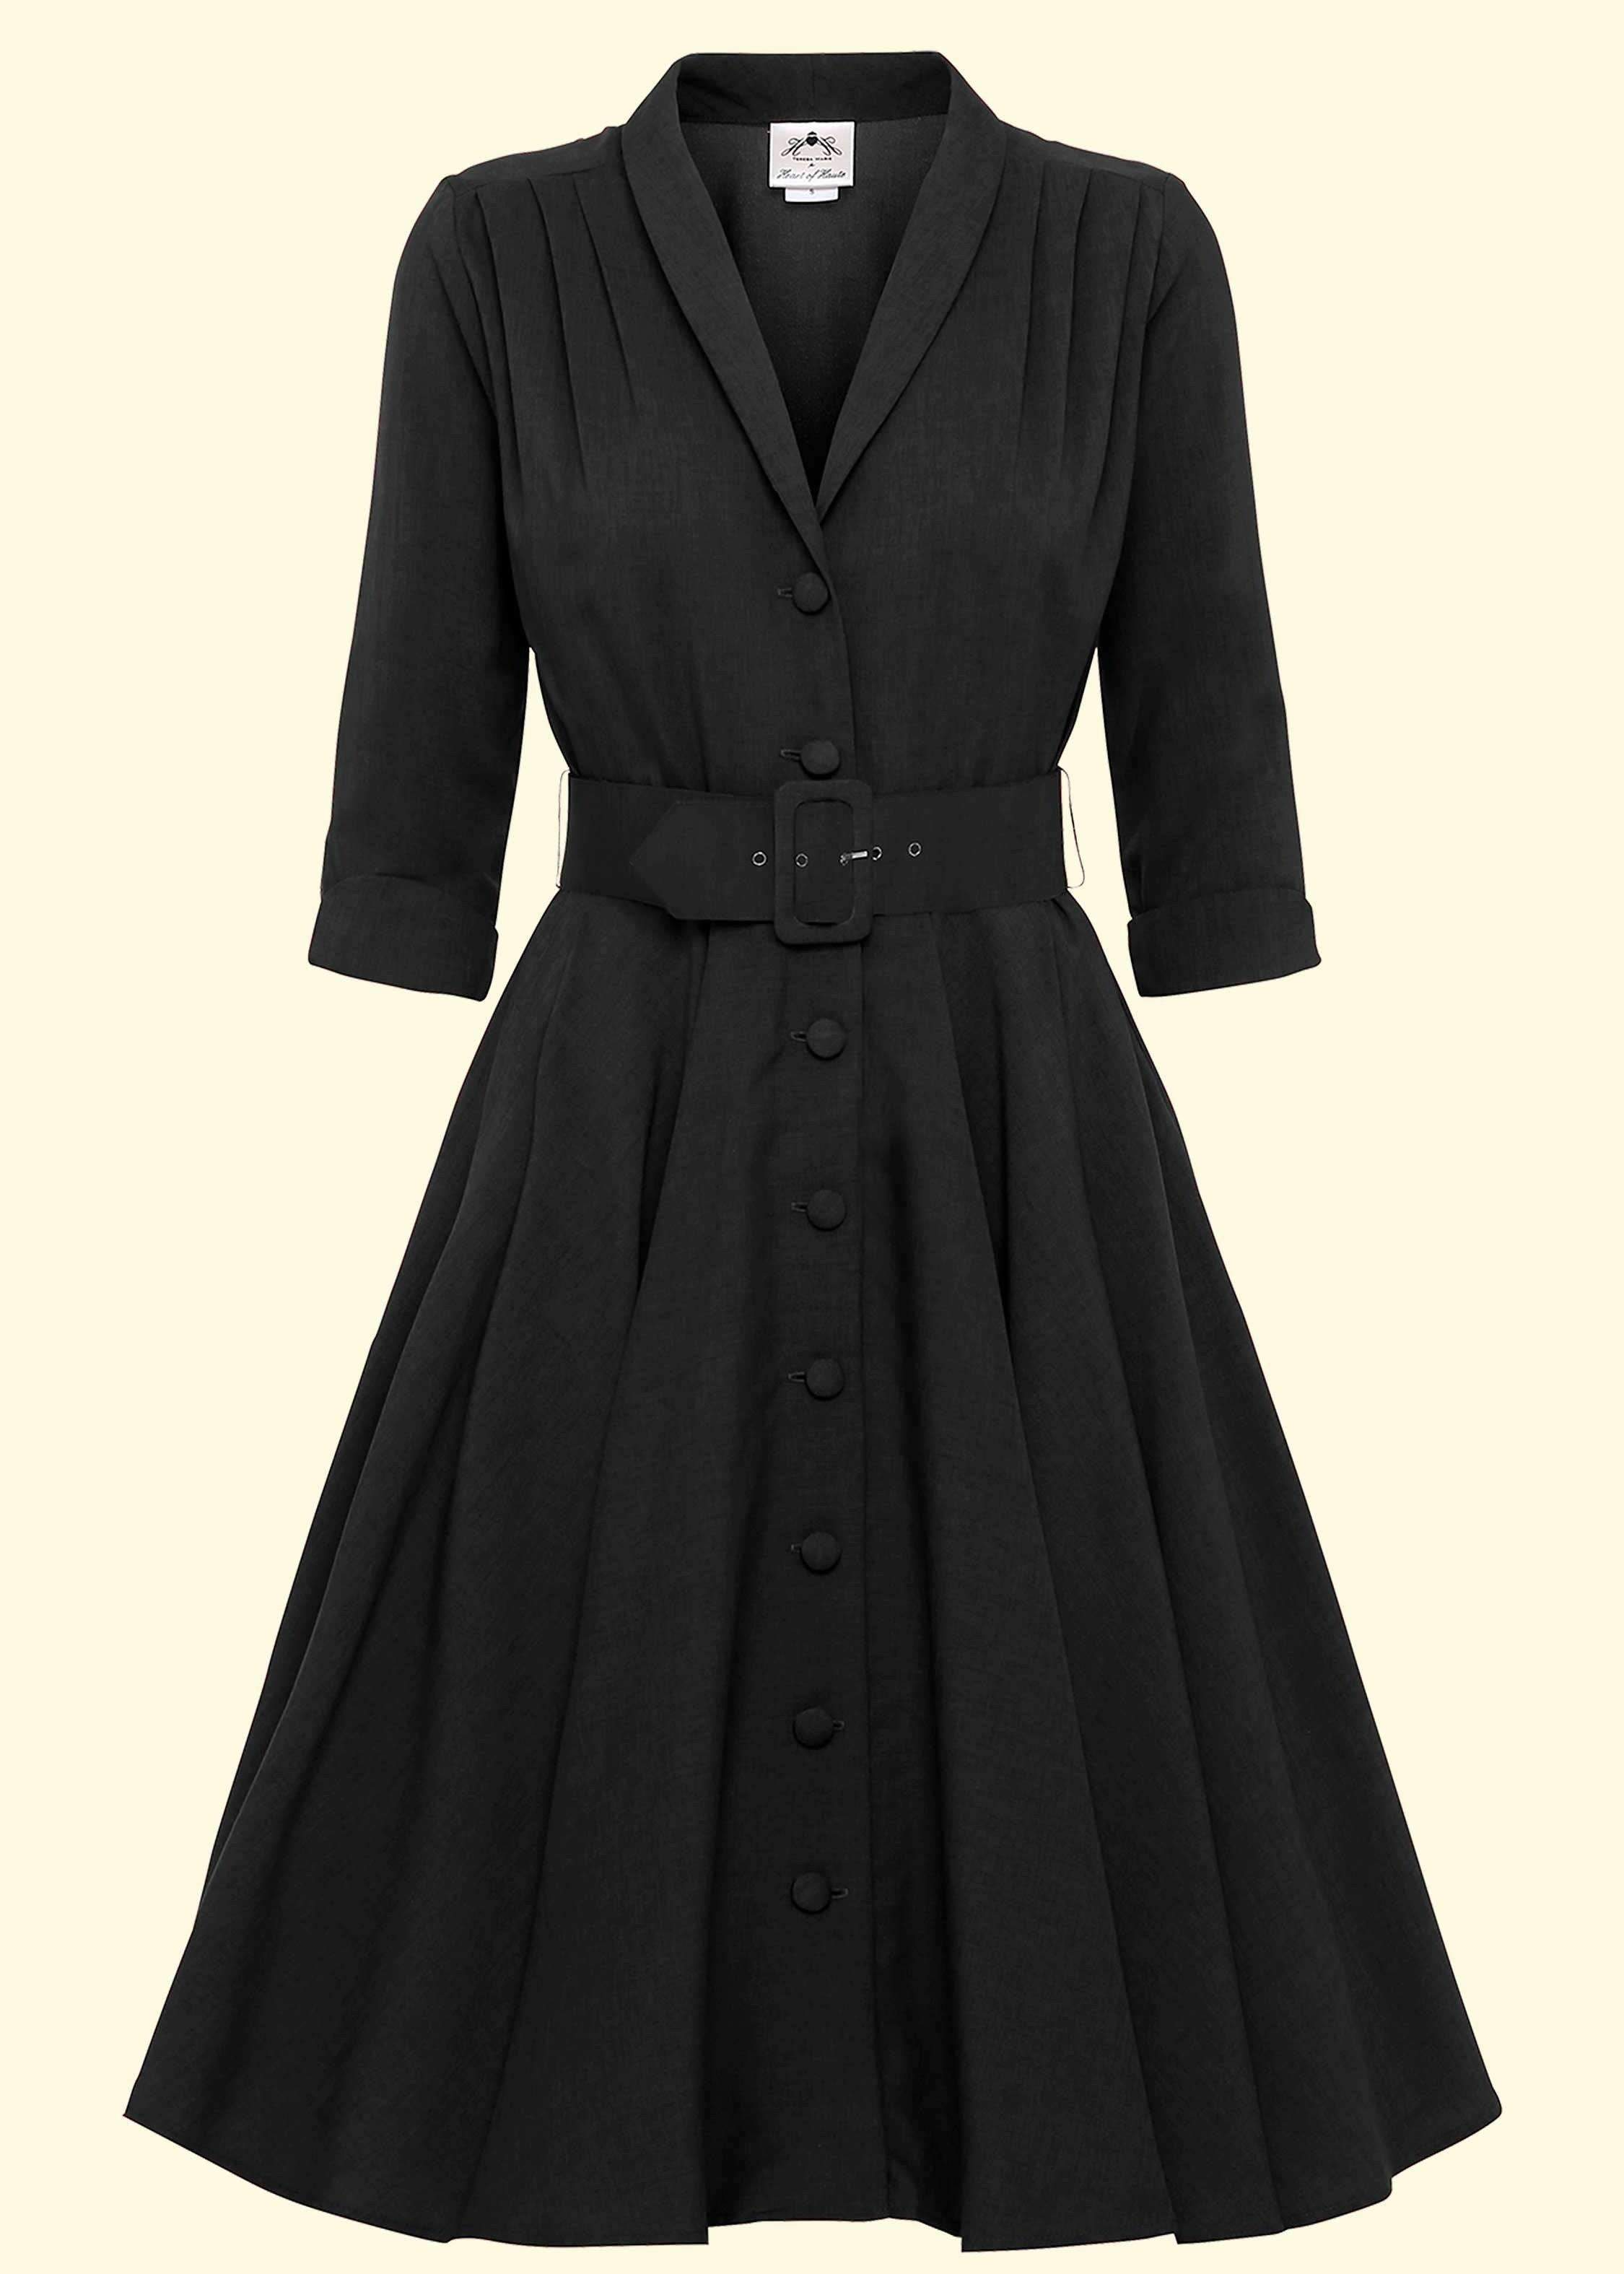 black swing dress from Heart of Haute